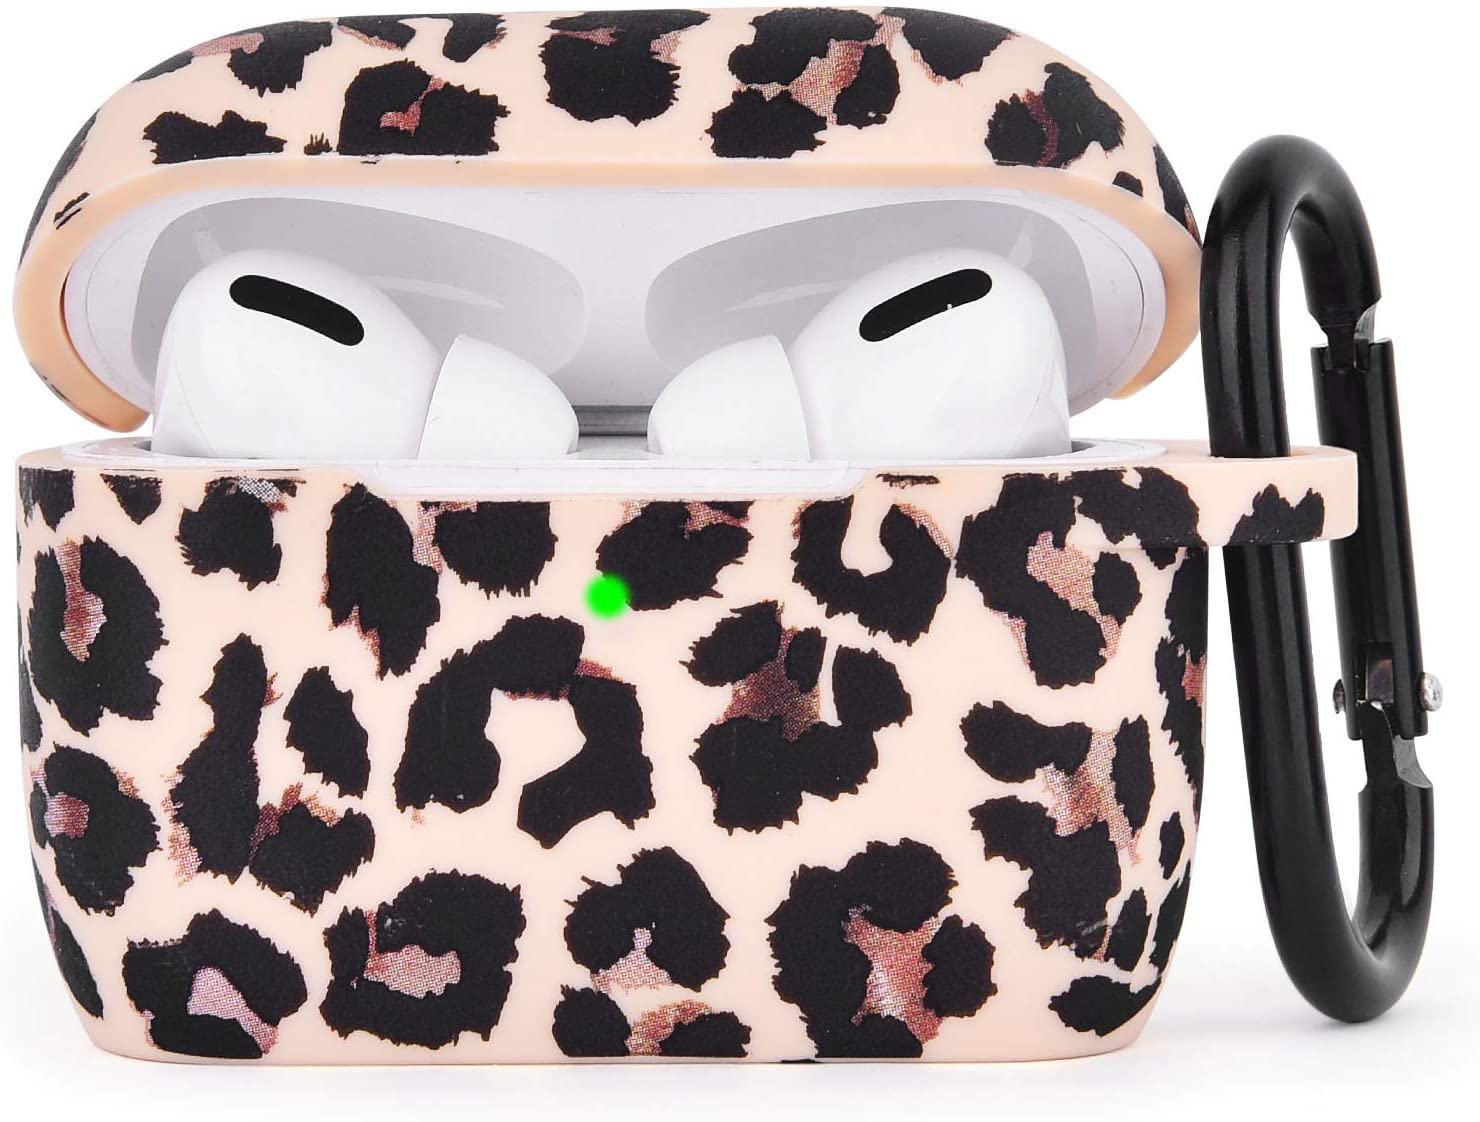 AIRSPO Silicone Cover Compatible AirPods Pro Case Floral Print